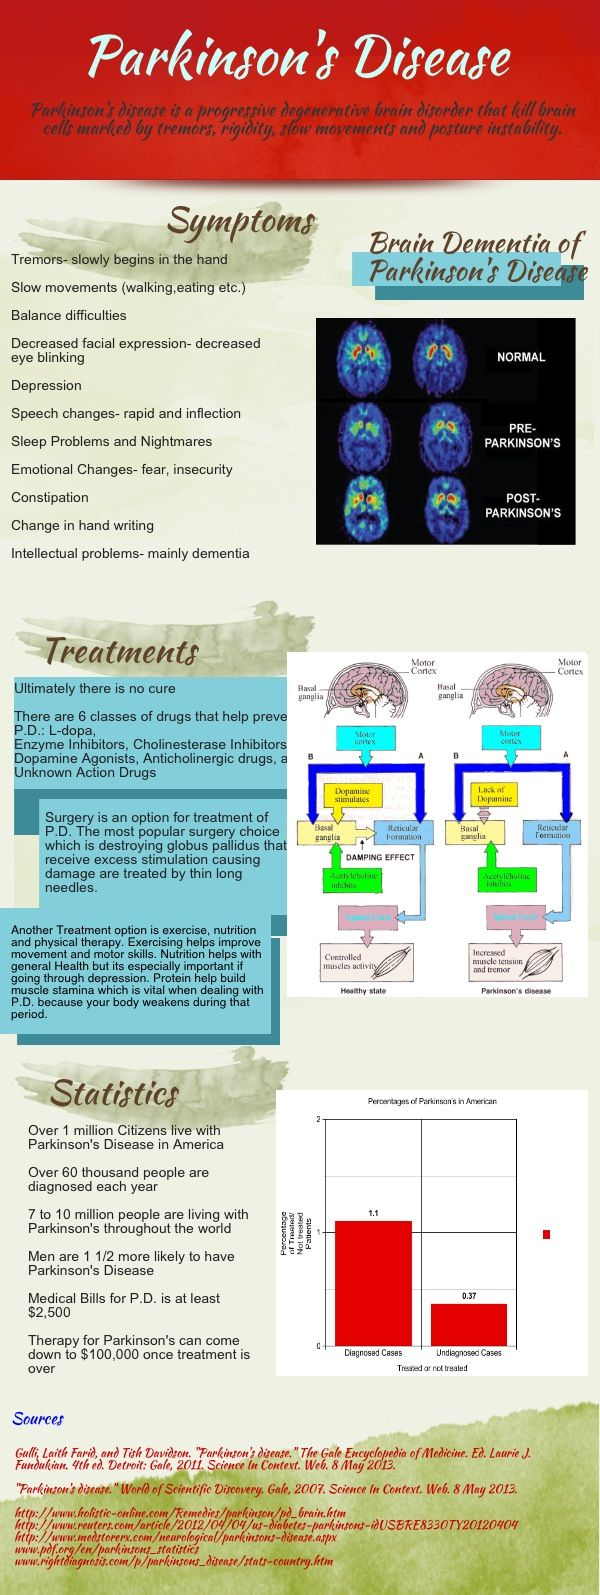 Info graphic Parkinson's Disease. Repinned by SOS Inc. Resources pinterest.com/sostherapy/.